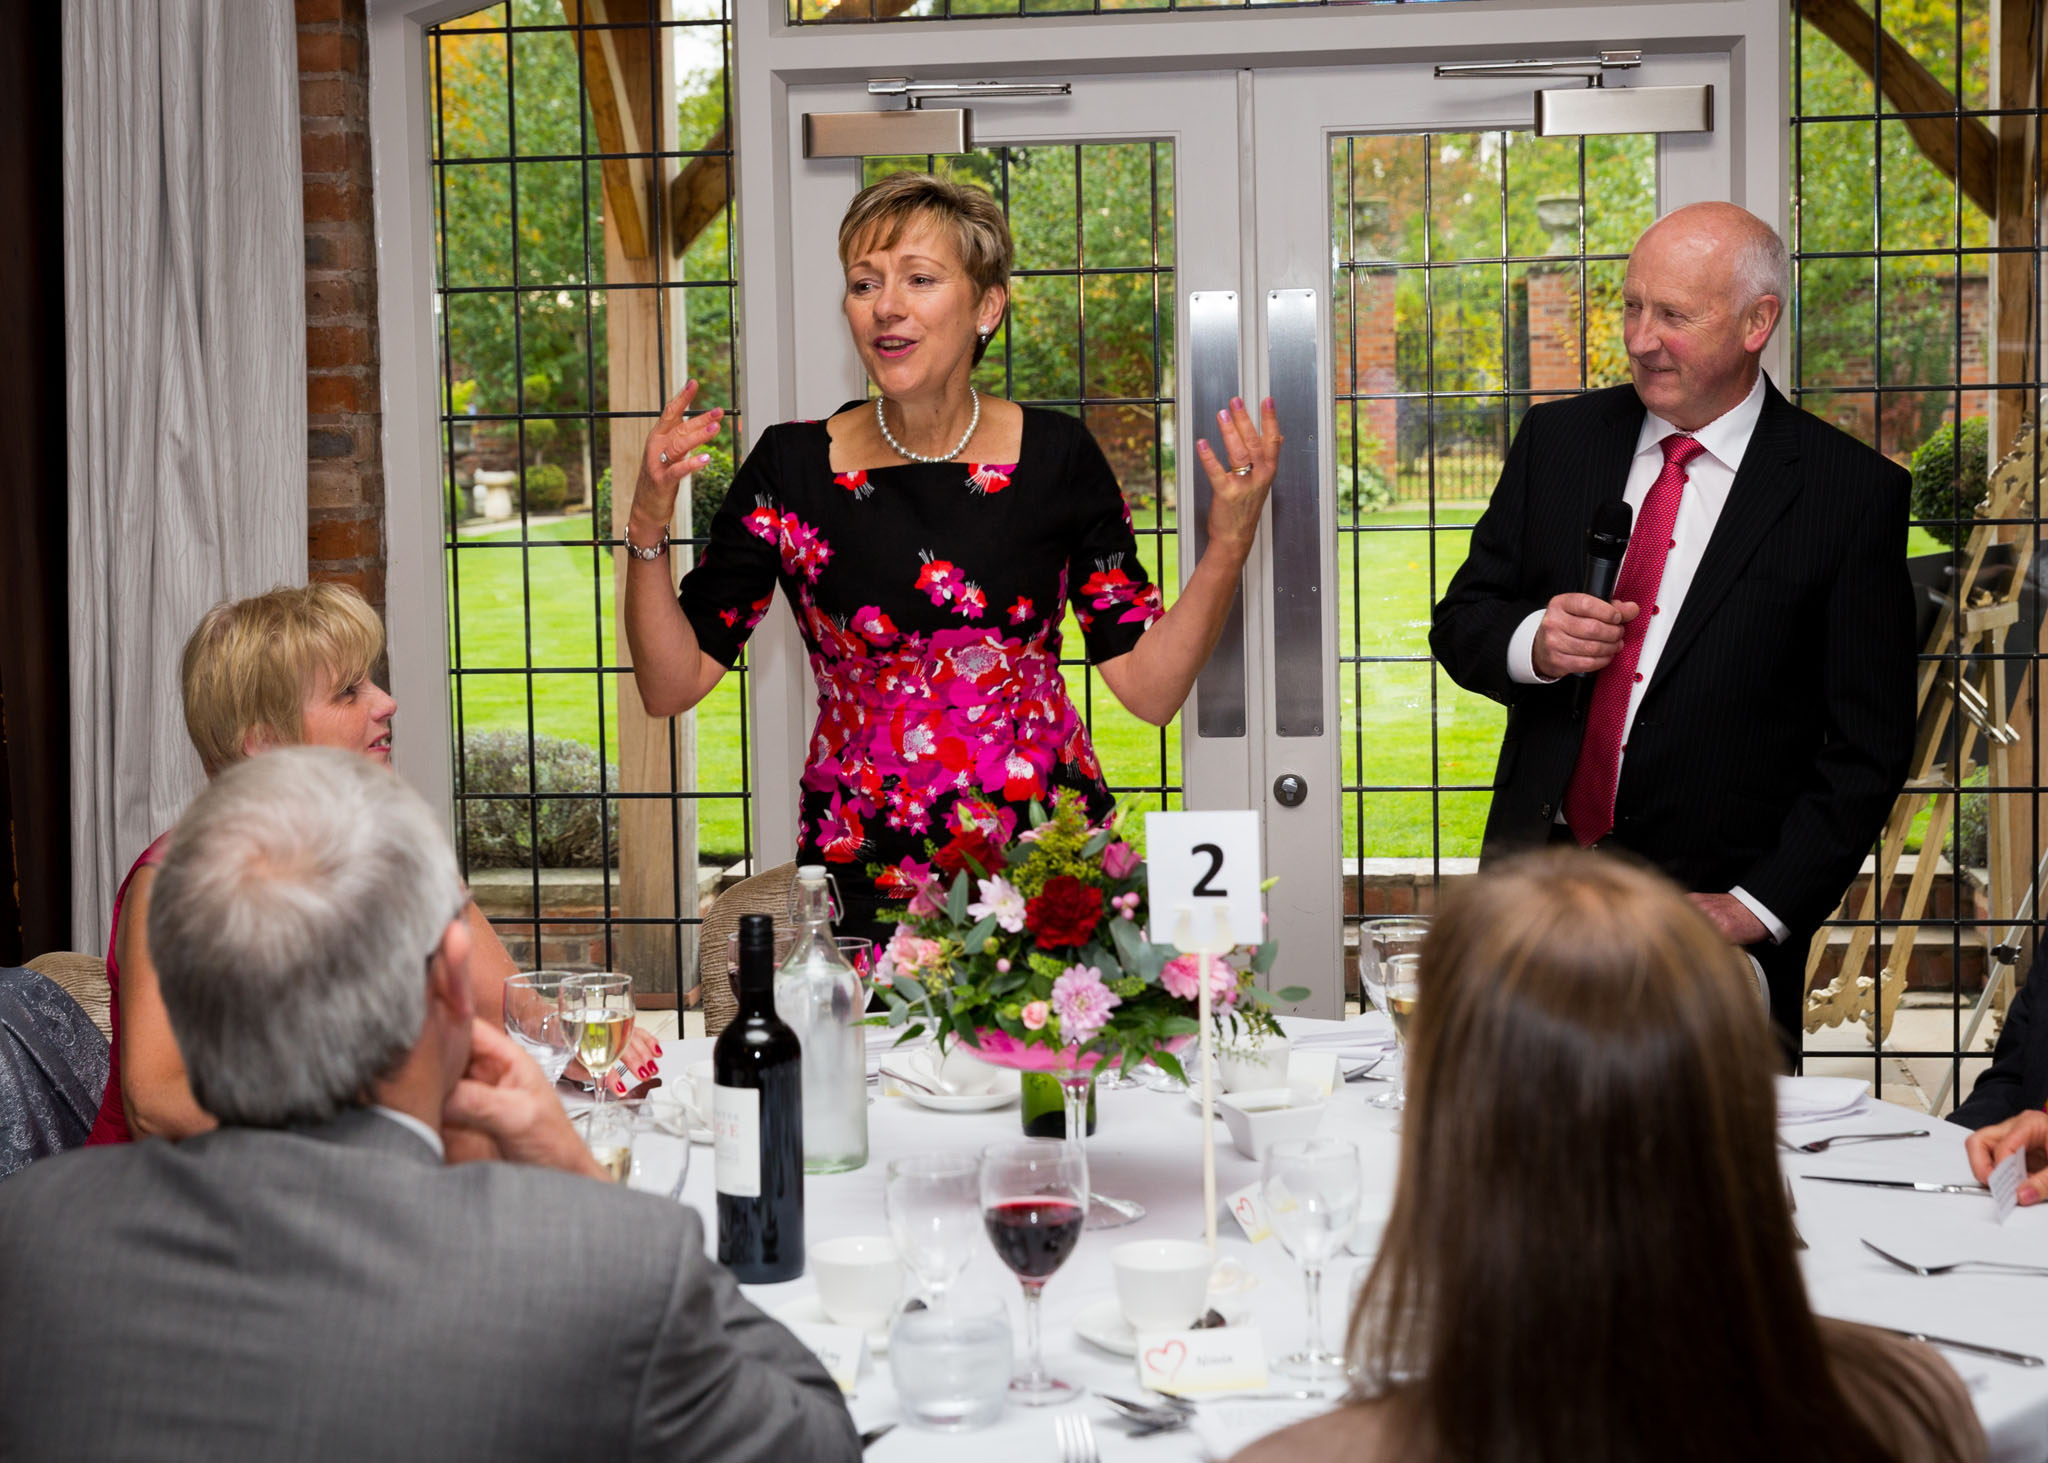 Photography at a ruby wedding party at Colshaw Hall, near Knutsford, Cheshire